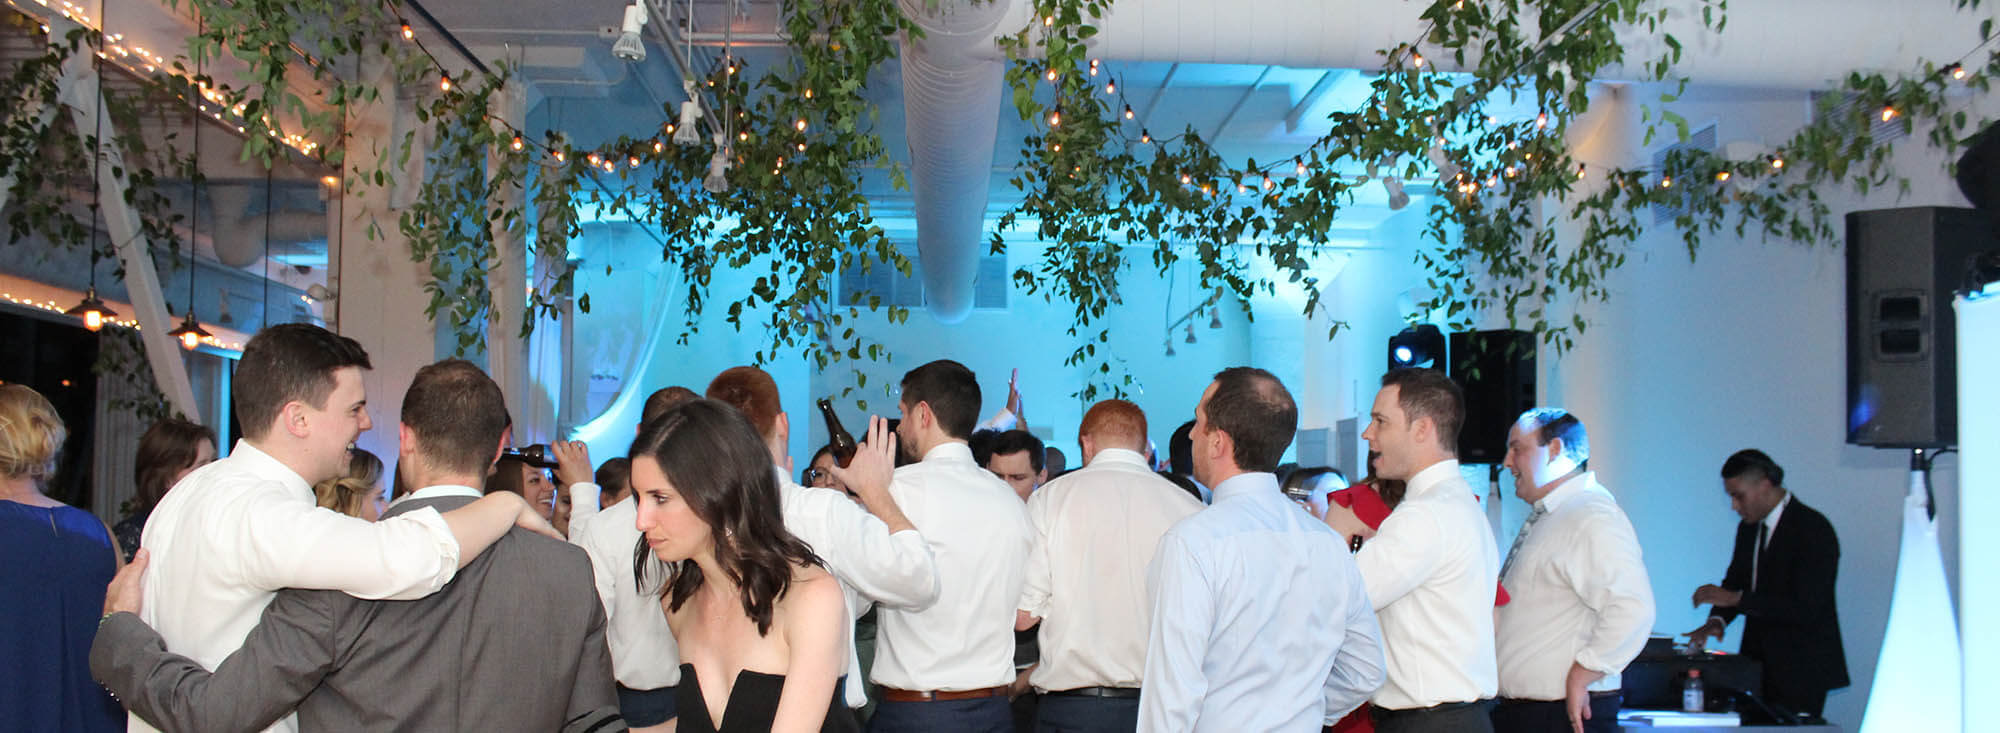 wedding with uplighting rentals at downtown chicago greenhouse loft